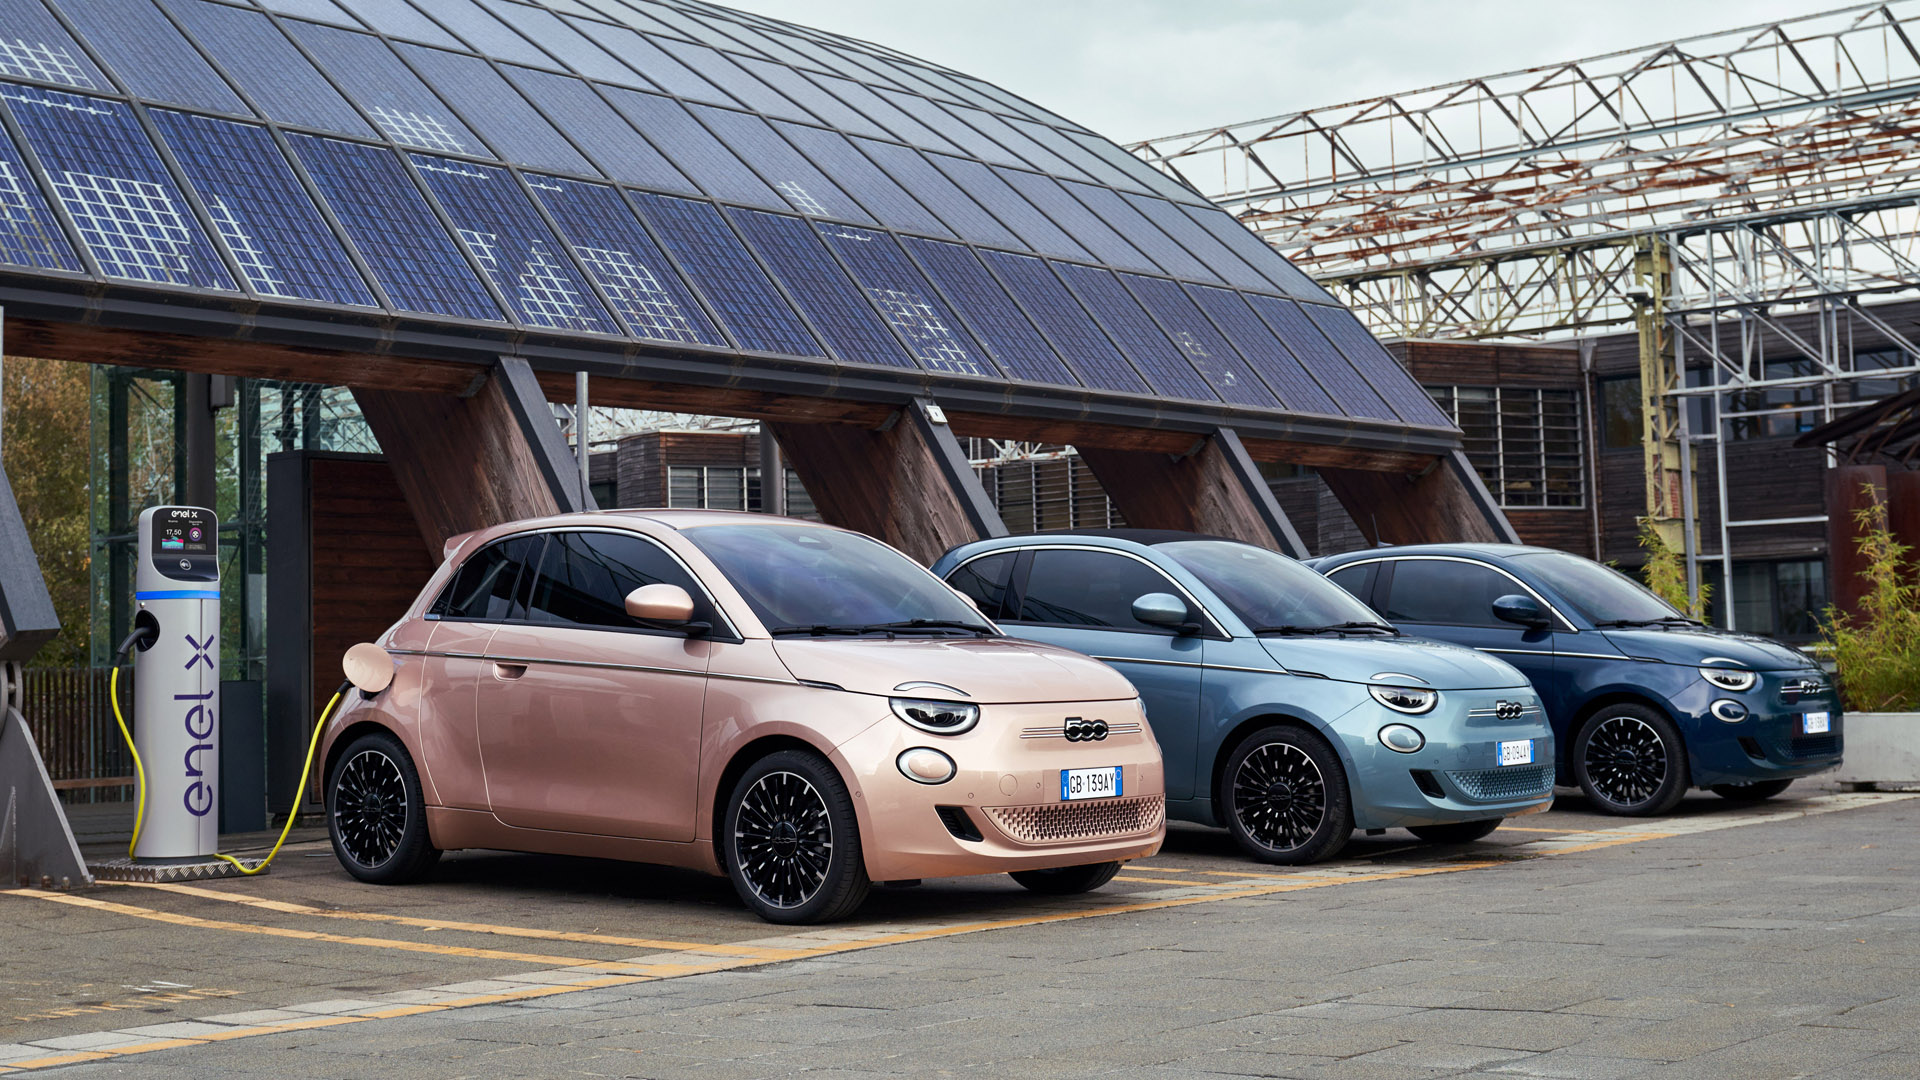 Fiat 500 Electric charging